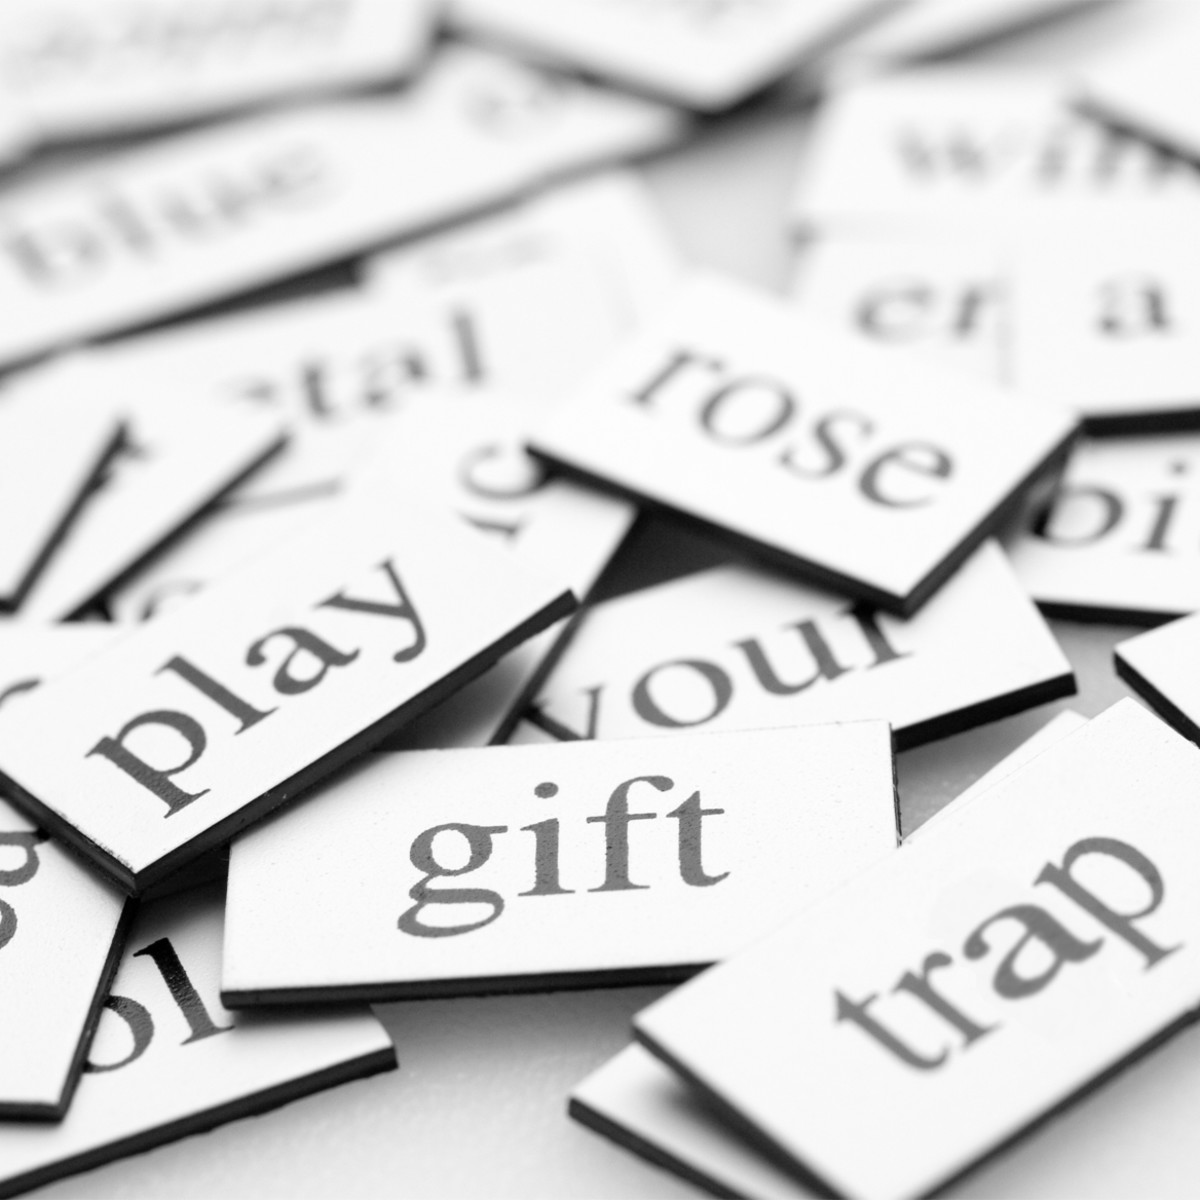 tips-for-writing-poetry-and-how-to-construct-a-poem